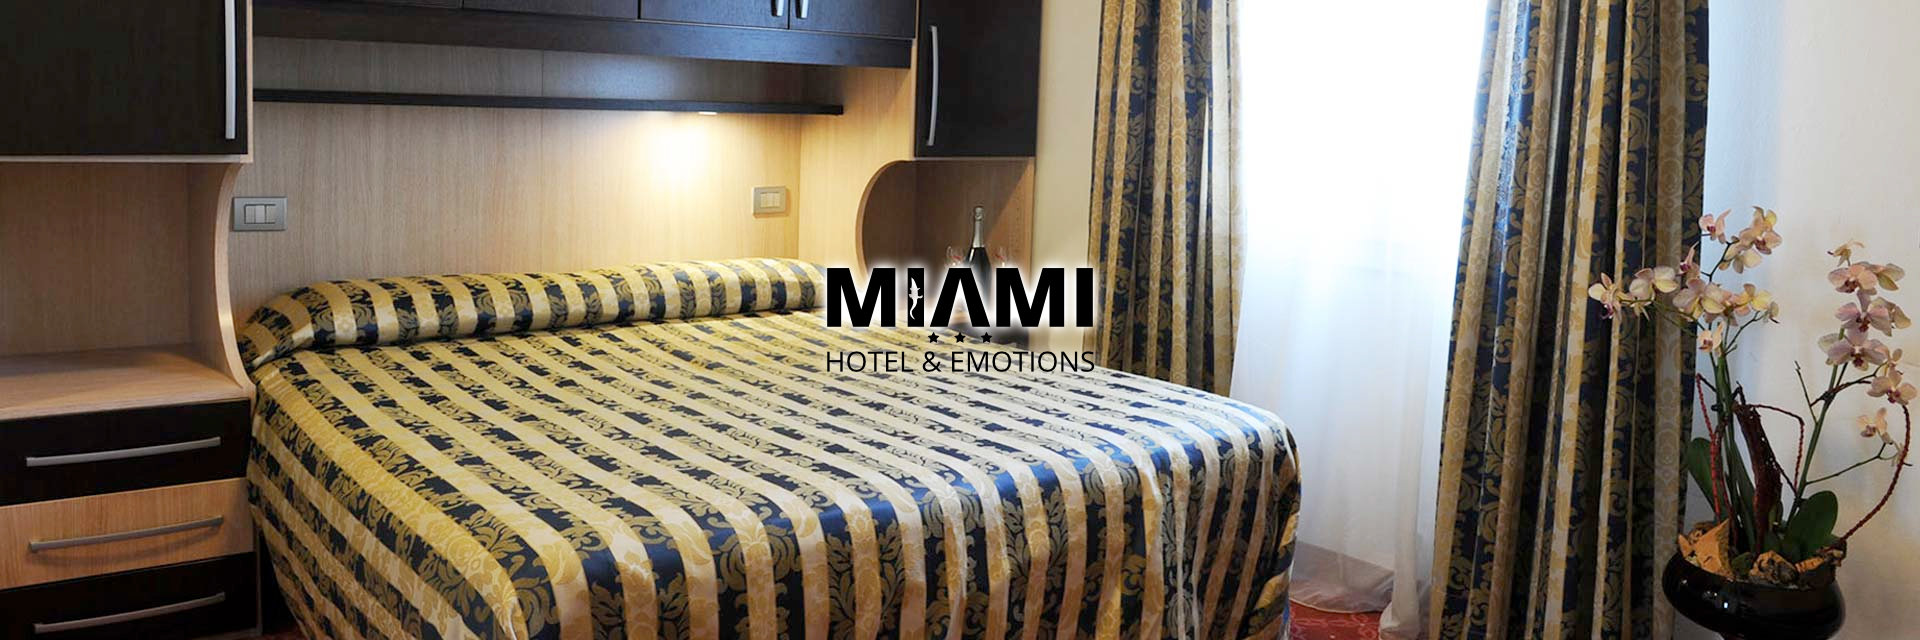 Hotel Miami - Just Bed Hotel Plus